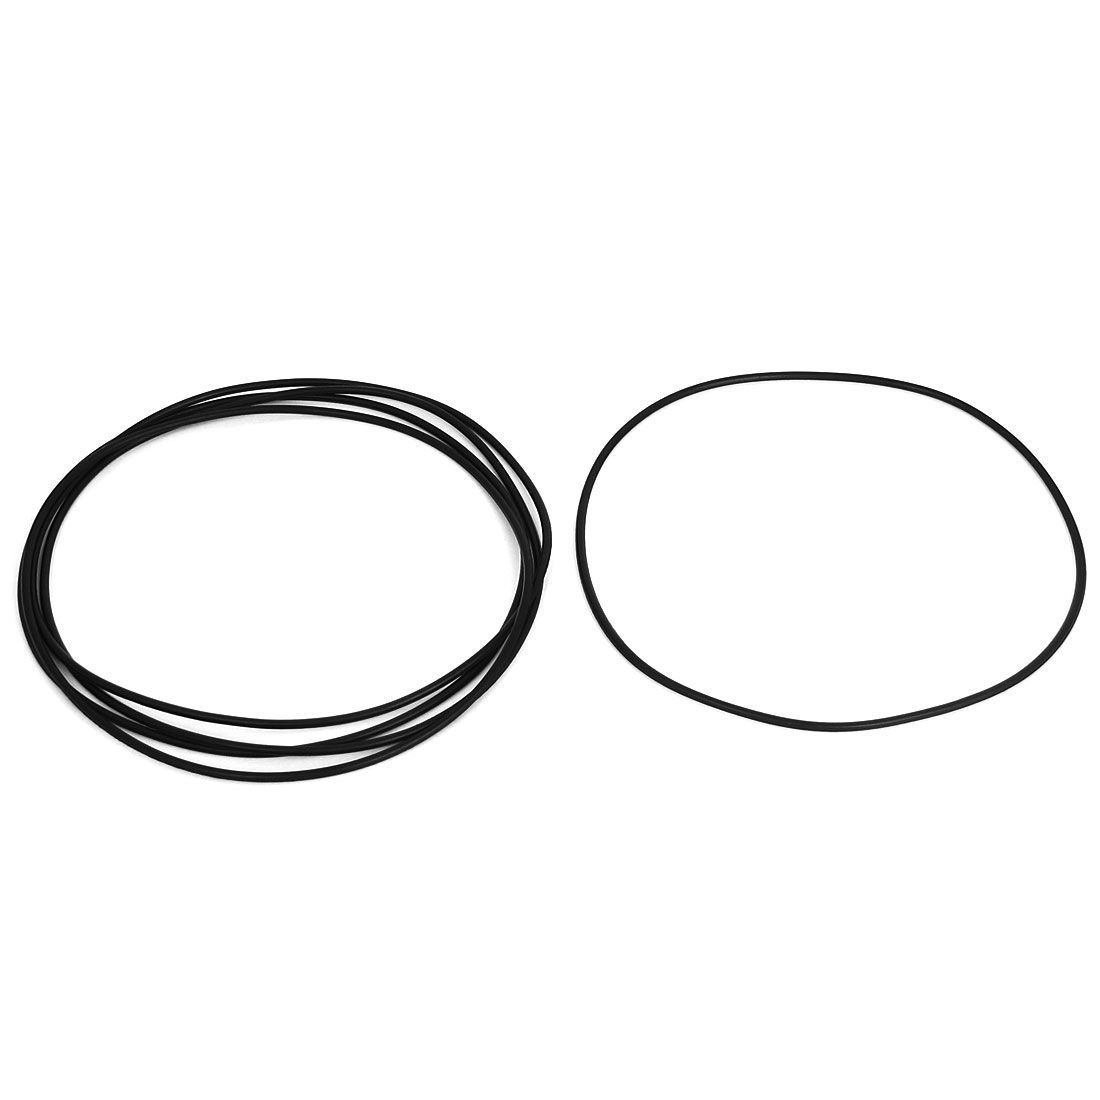 5pcs 132mm OD 128mm Inner Dia 2mm Thickness Rubber O Ring Oil Seal Gaskets Black